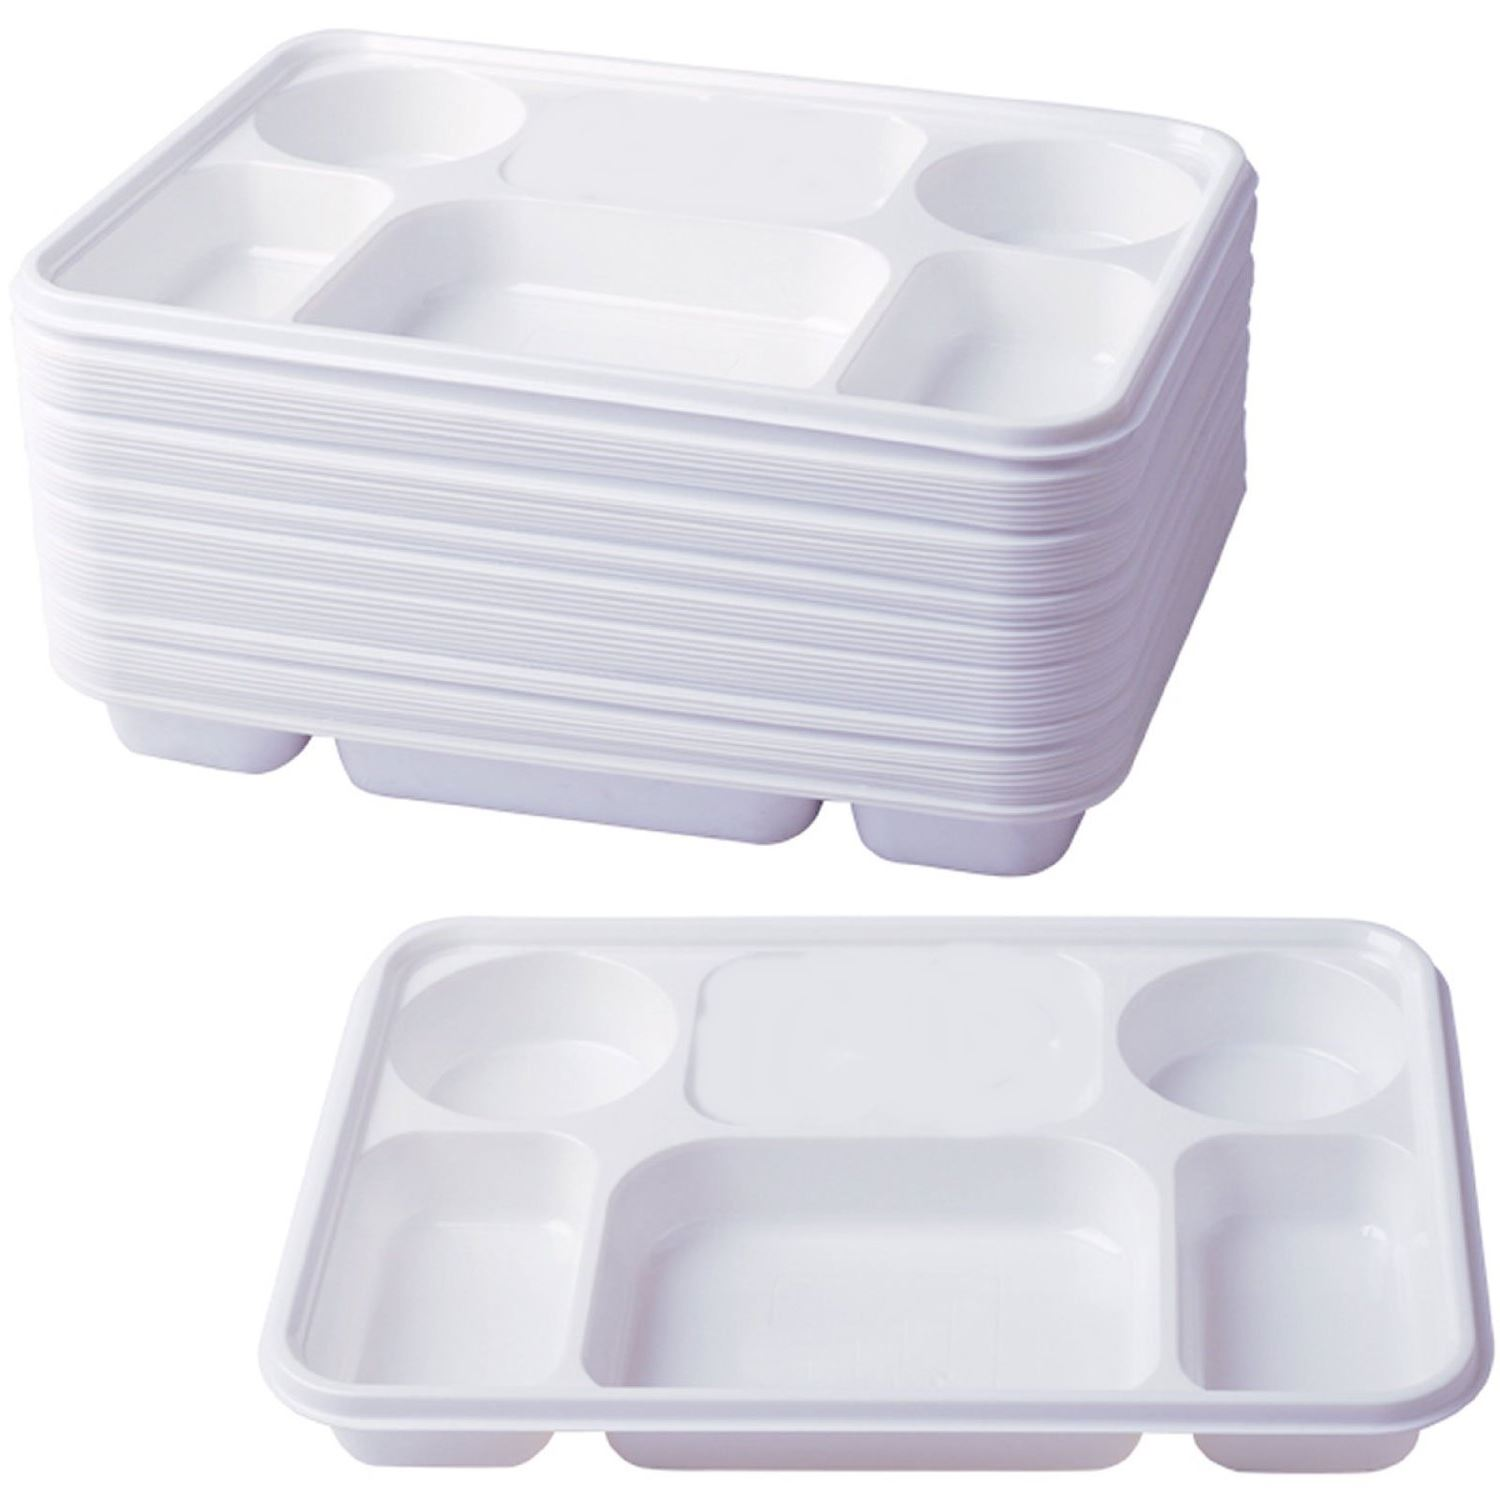 Compartment Plastic Dinner Plates 50 Pcs Party Home Food Disposable Section T